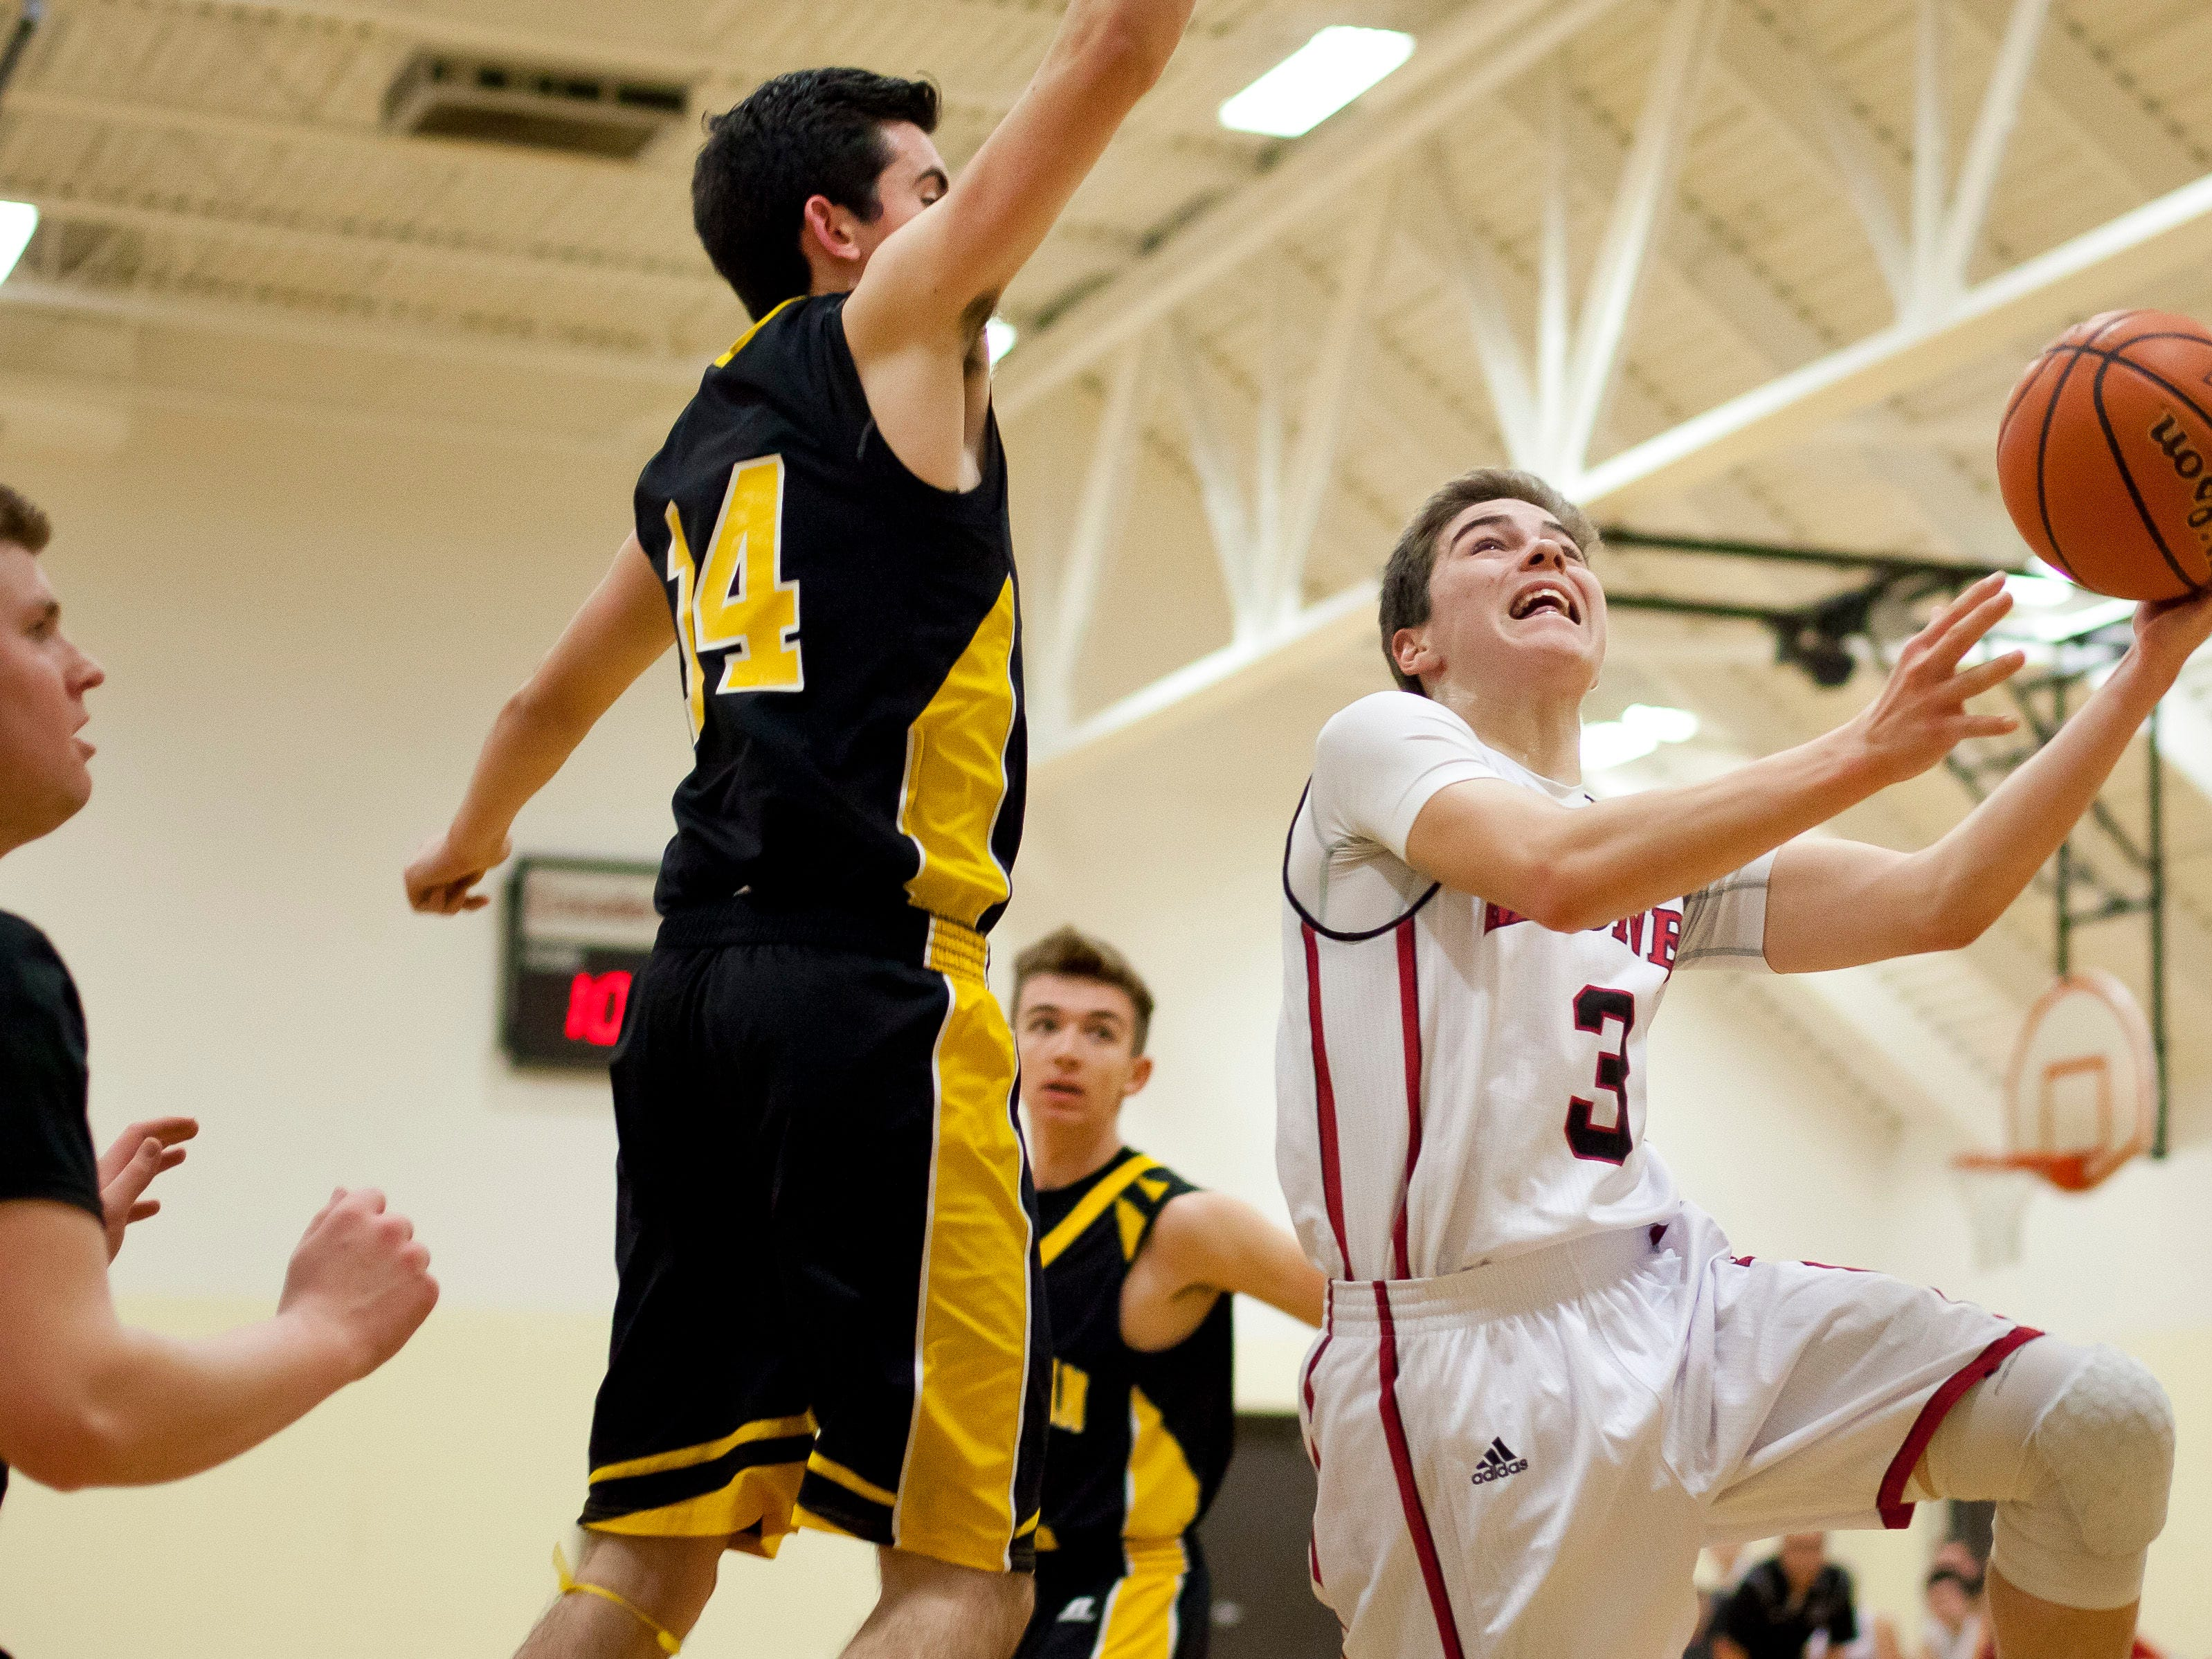 Cardinal Mooney freshman Daniel Everhart goes for a layup as Lutheran North senior Jamesen McHale attempts to block during a basketball game Tuesday, Feb. 17, 2015 at Cardinal Mooney High School in Marine City.